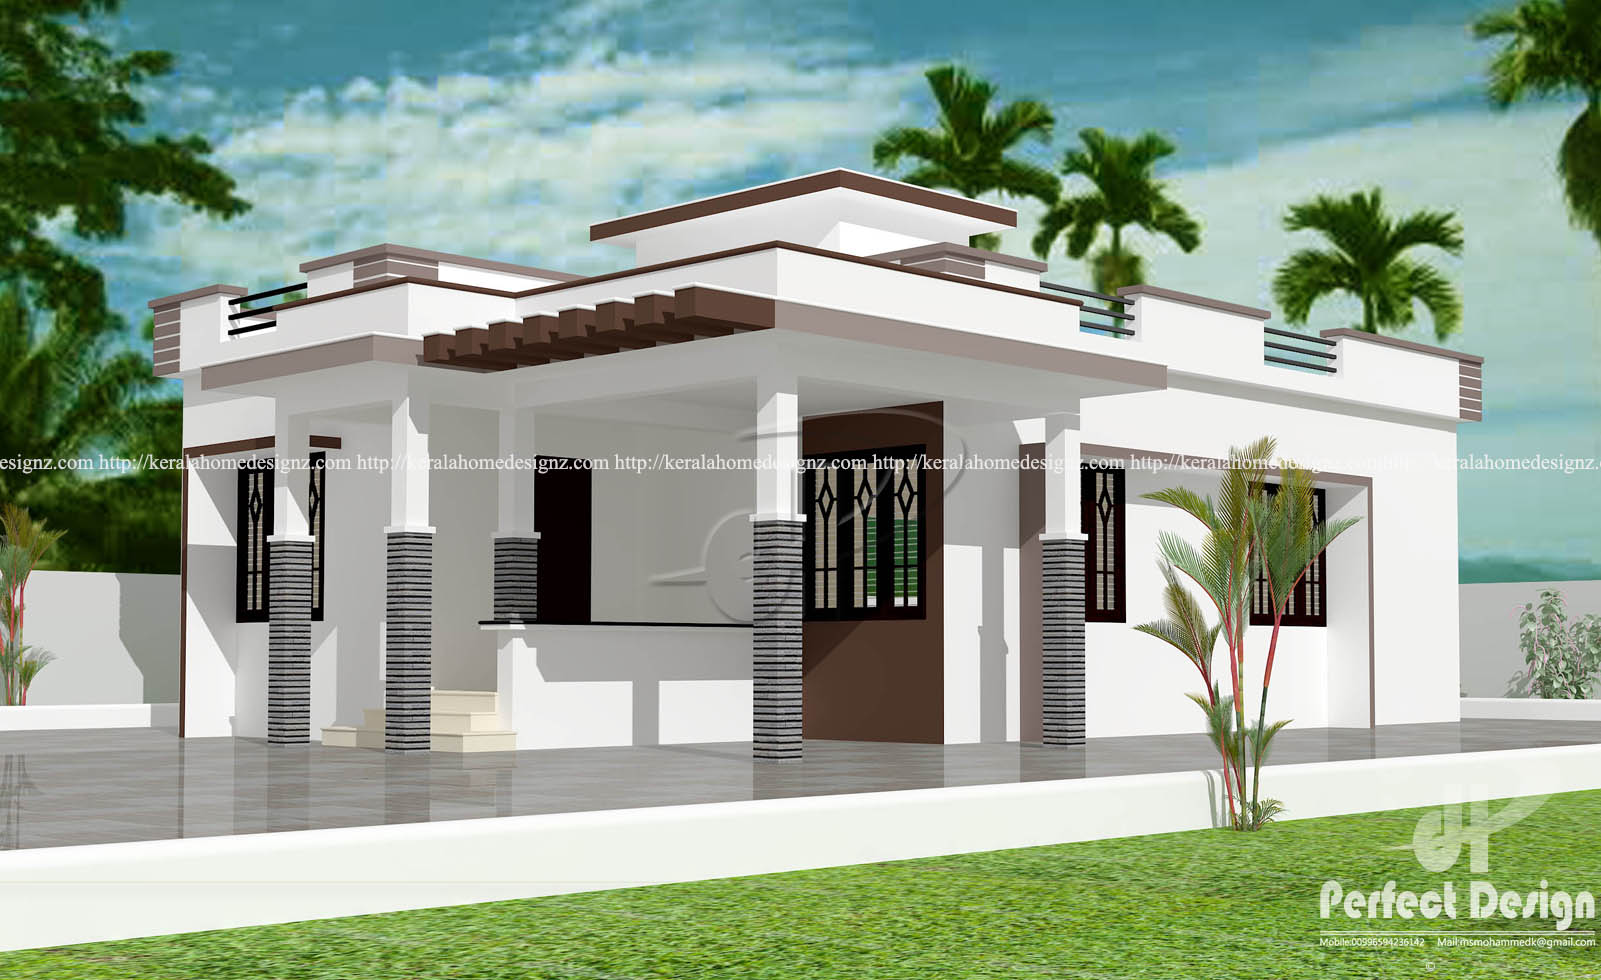 5 Lakh Home Design Part - 46: U20b912 Lakhs Cost Estimated Modern Home